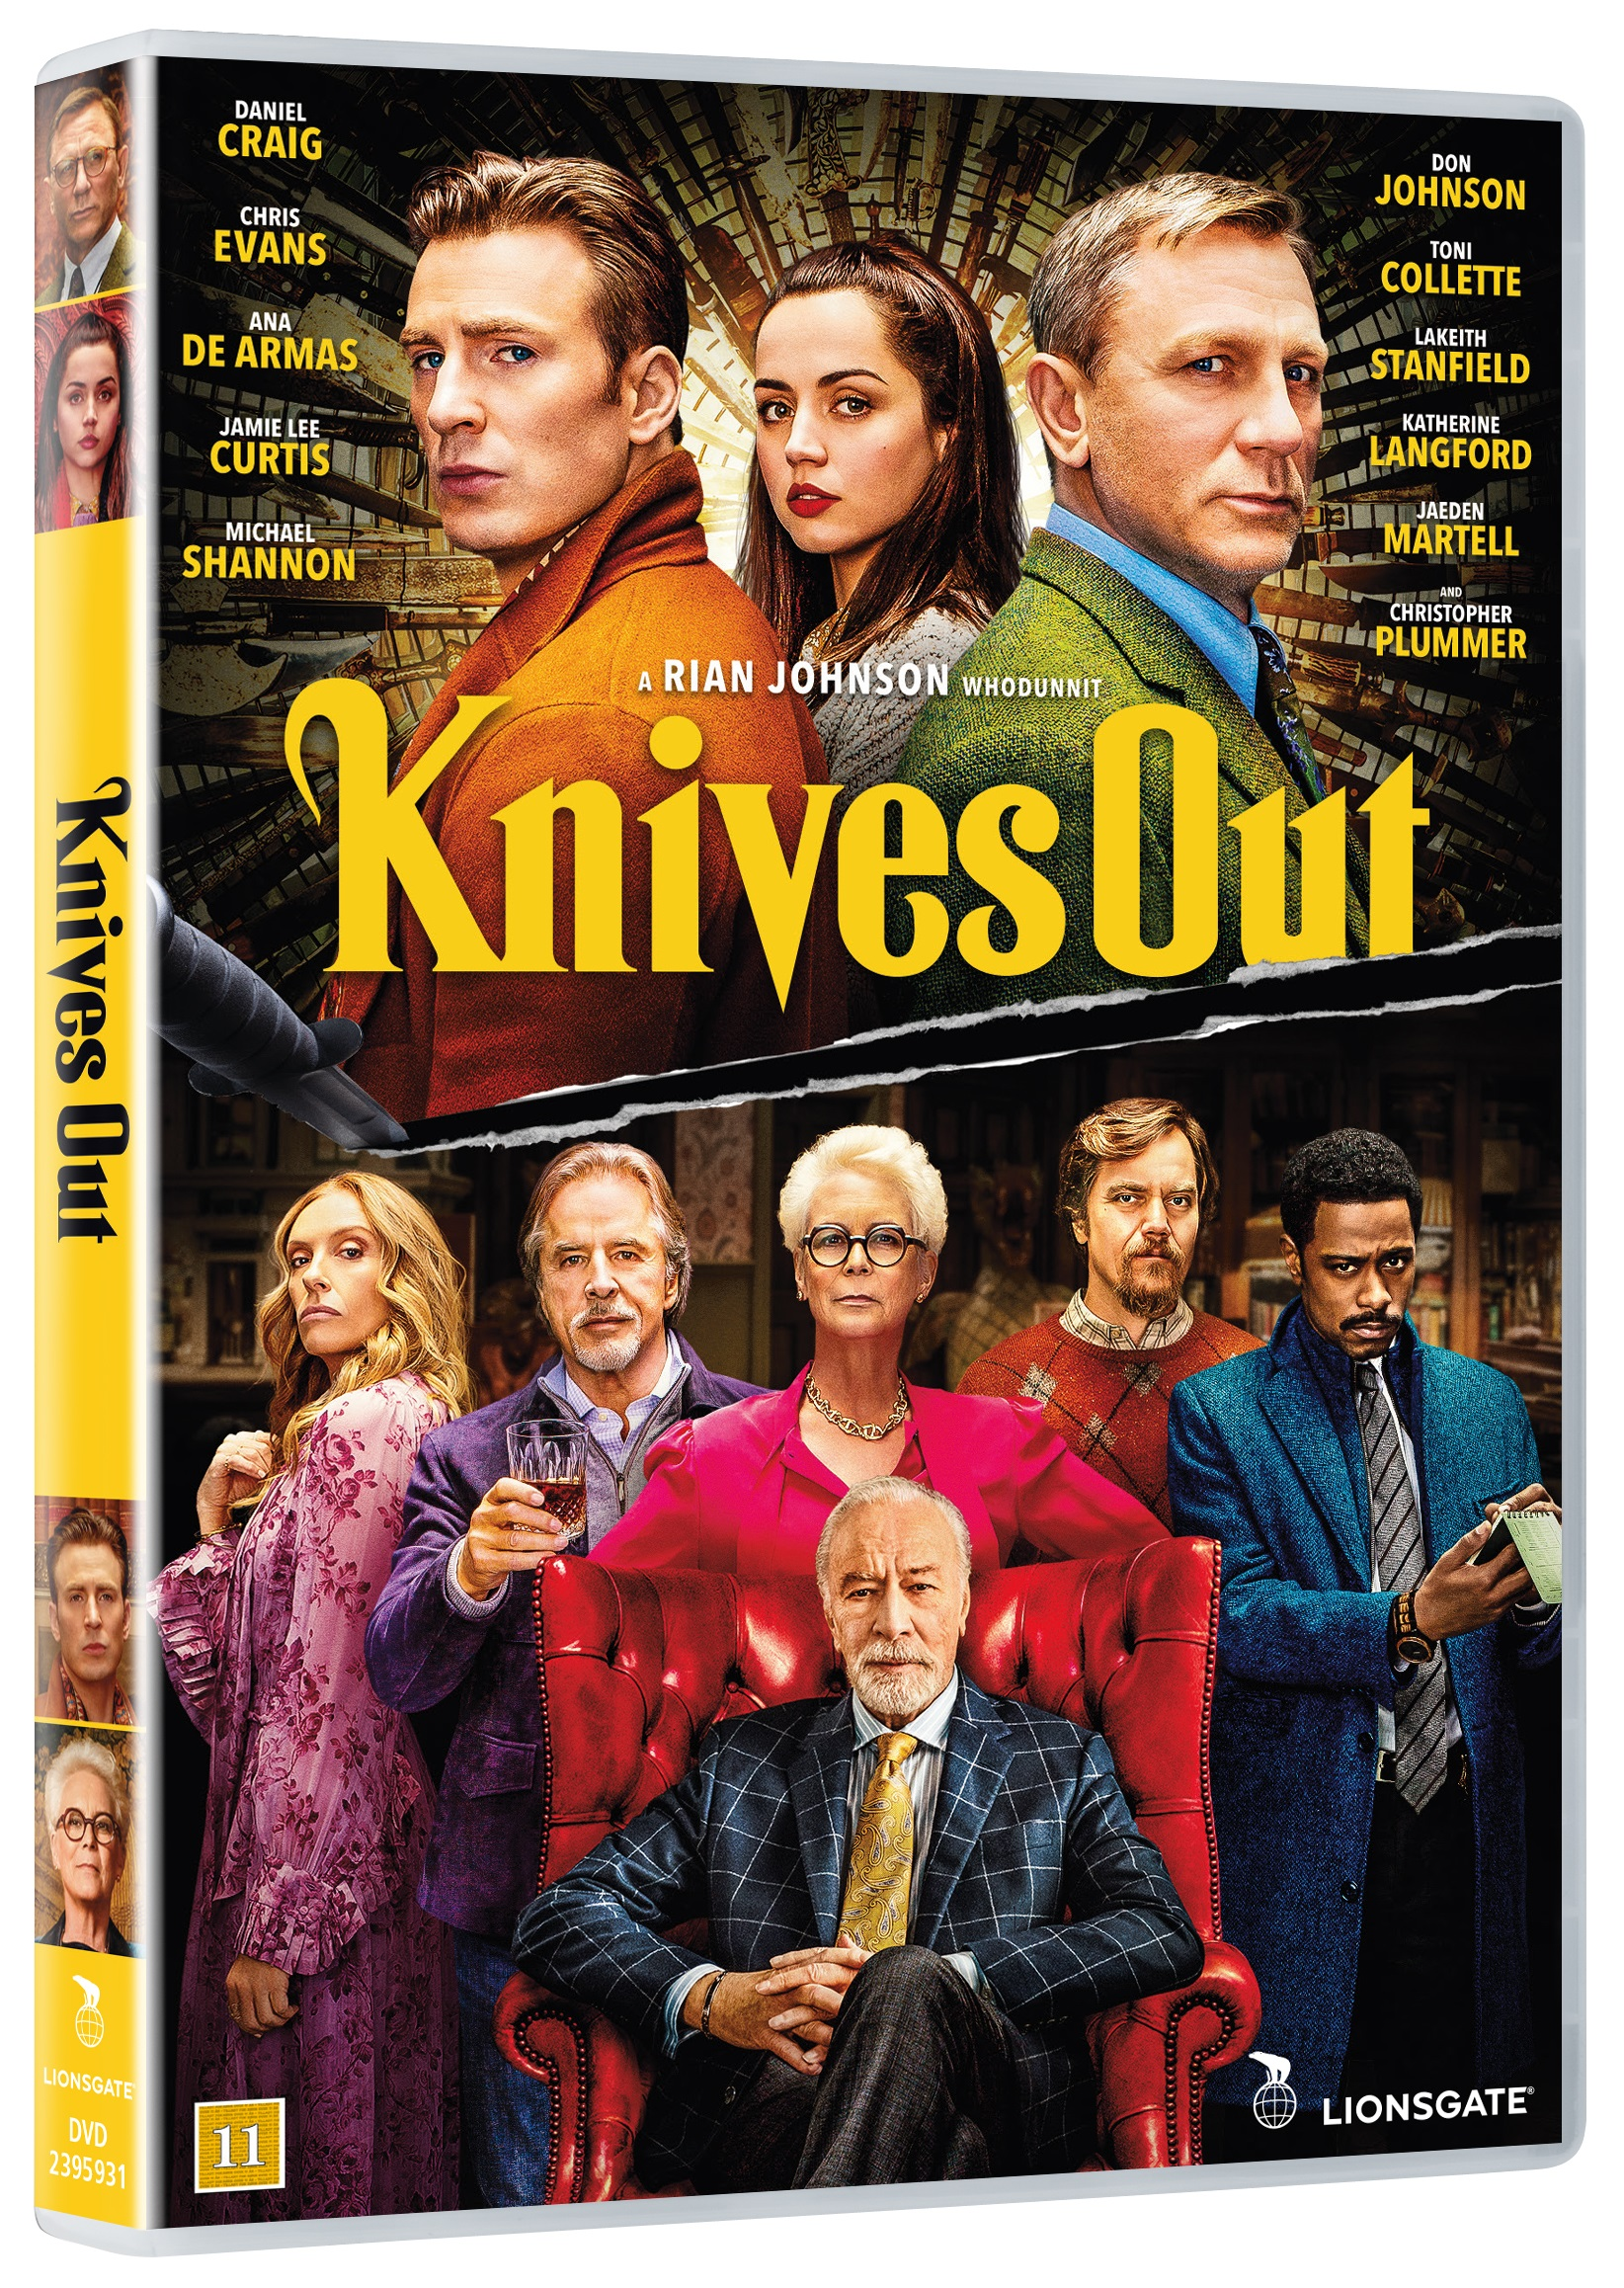 Knives out -  - Film -  - 5708758725118 - 6/4-2020